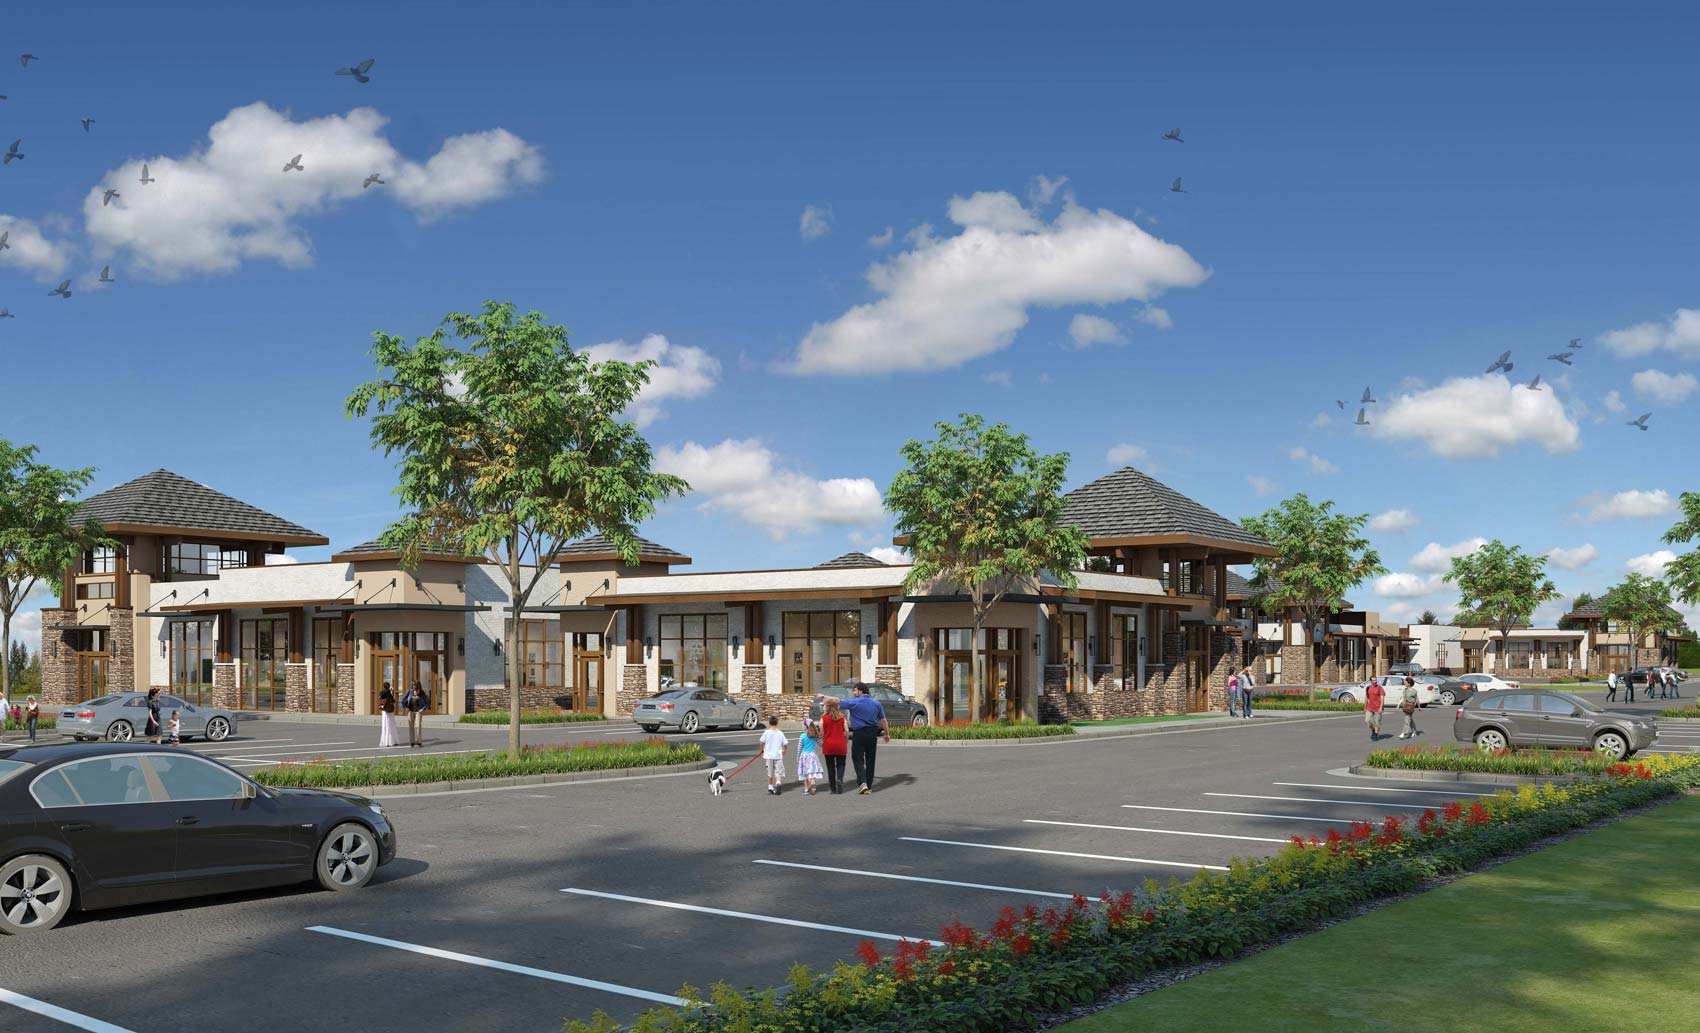 Rendering of The Village at Malcom Bridge